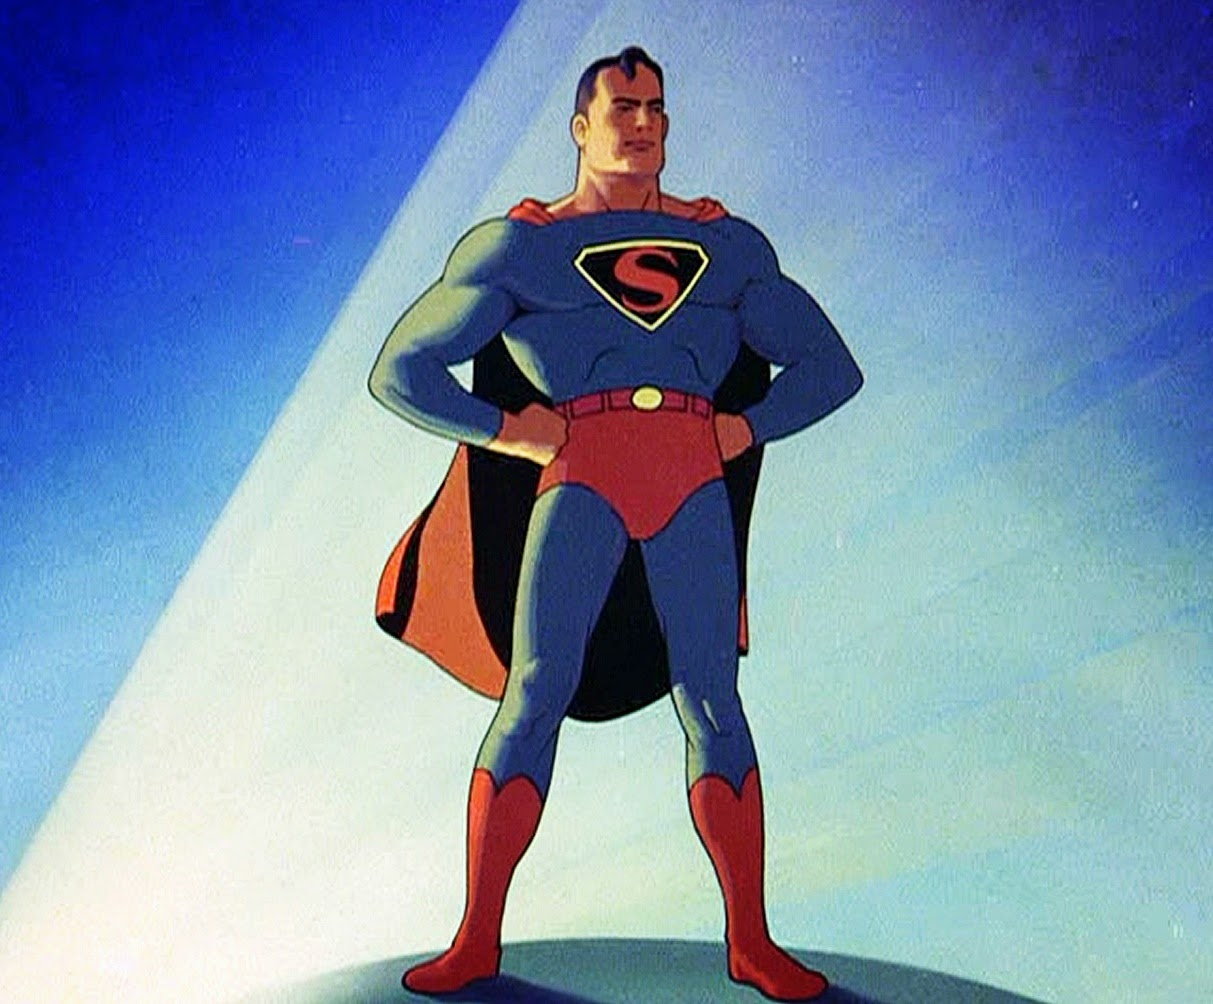 Original Superman Cartoon